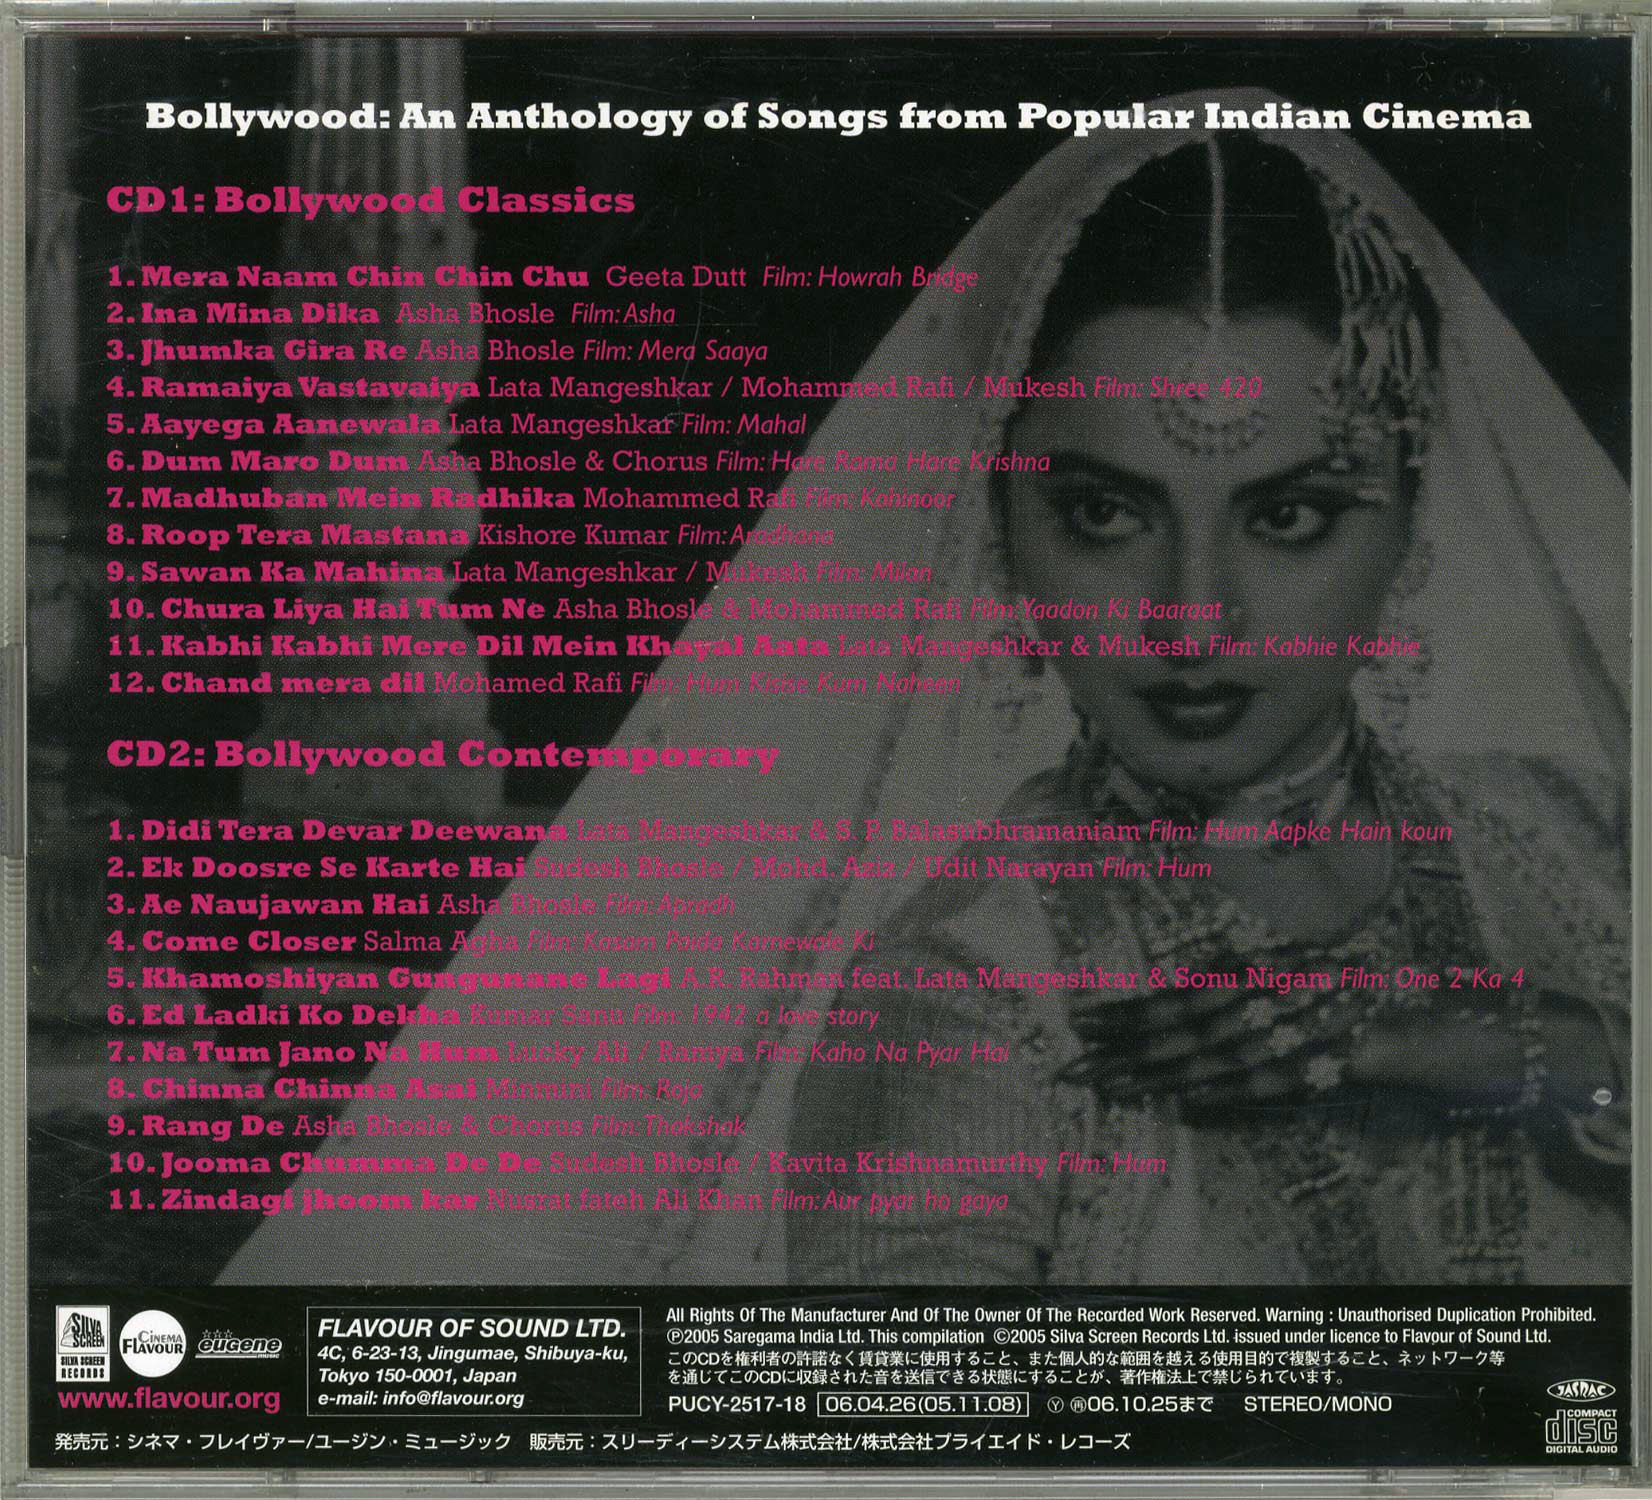 Bollywood An Anthology of Songs from Popular Indian Cinema[image2]